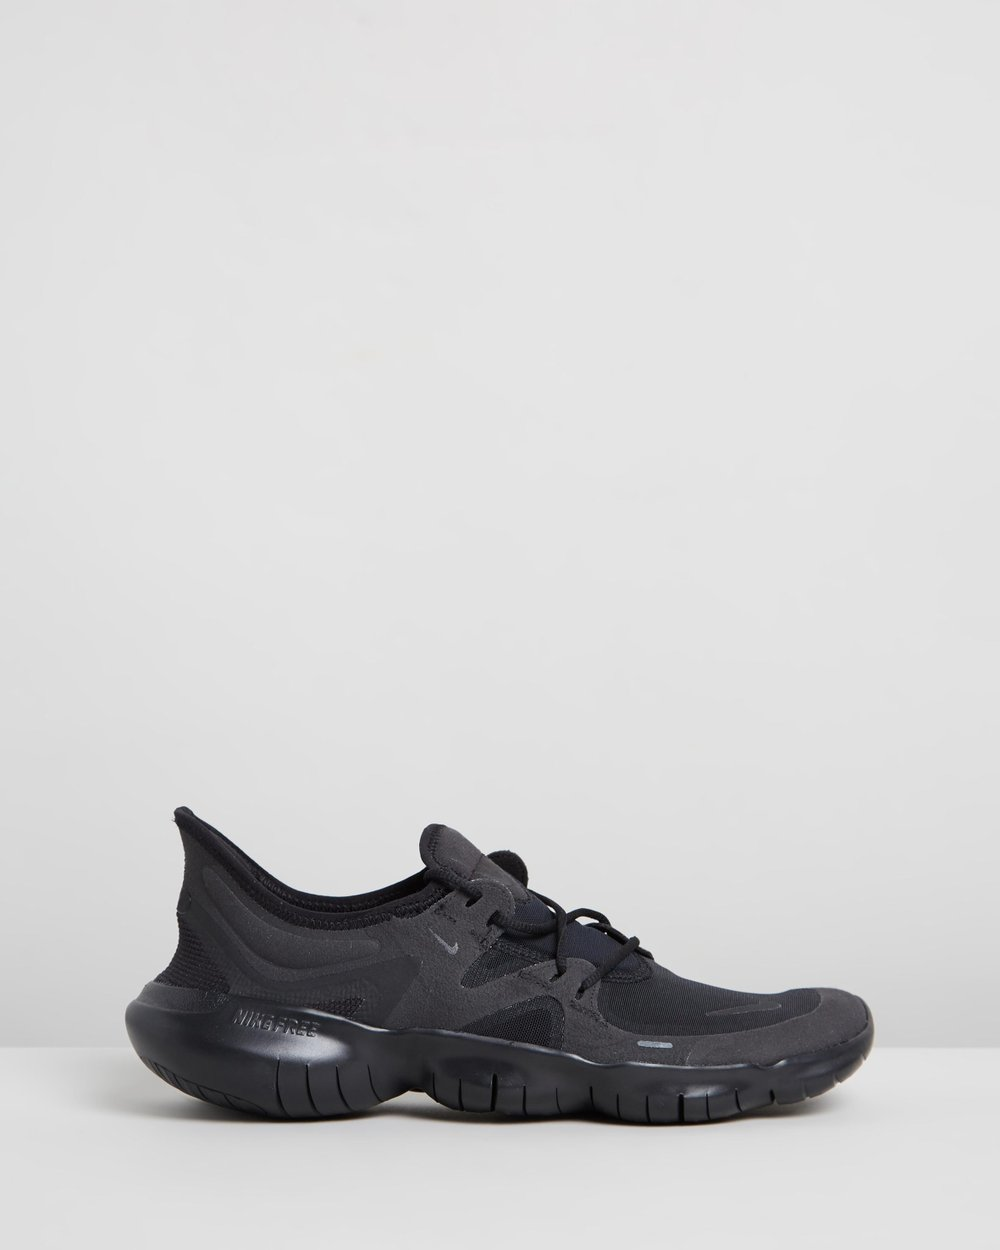 nike free run 5.0 mens black